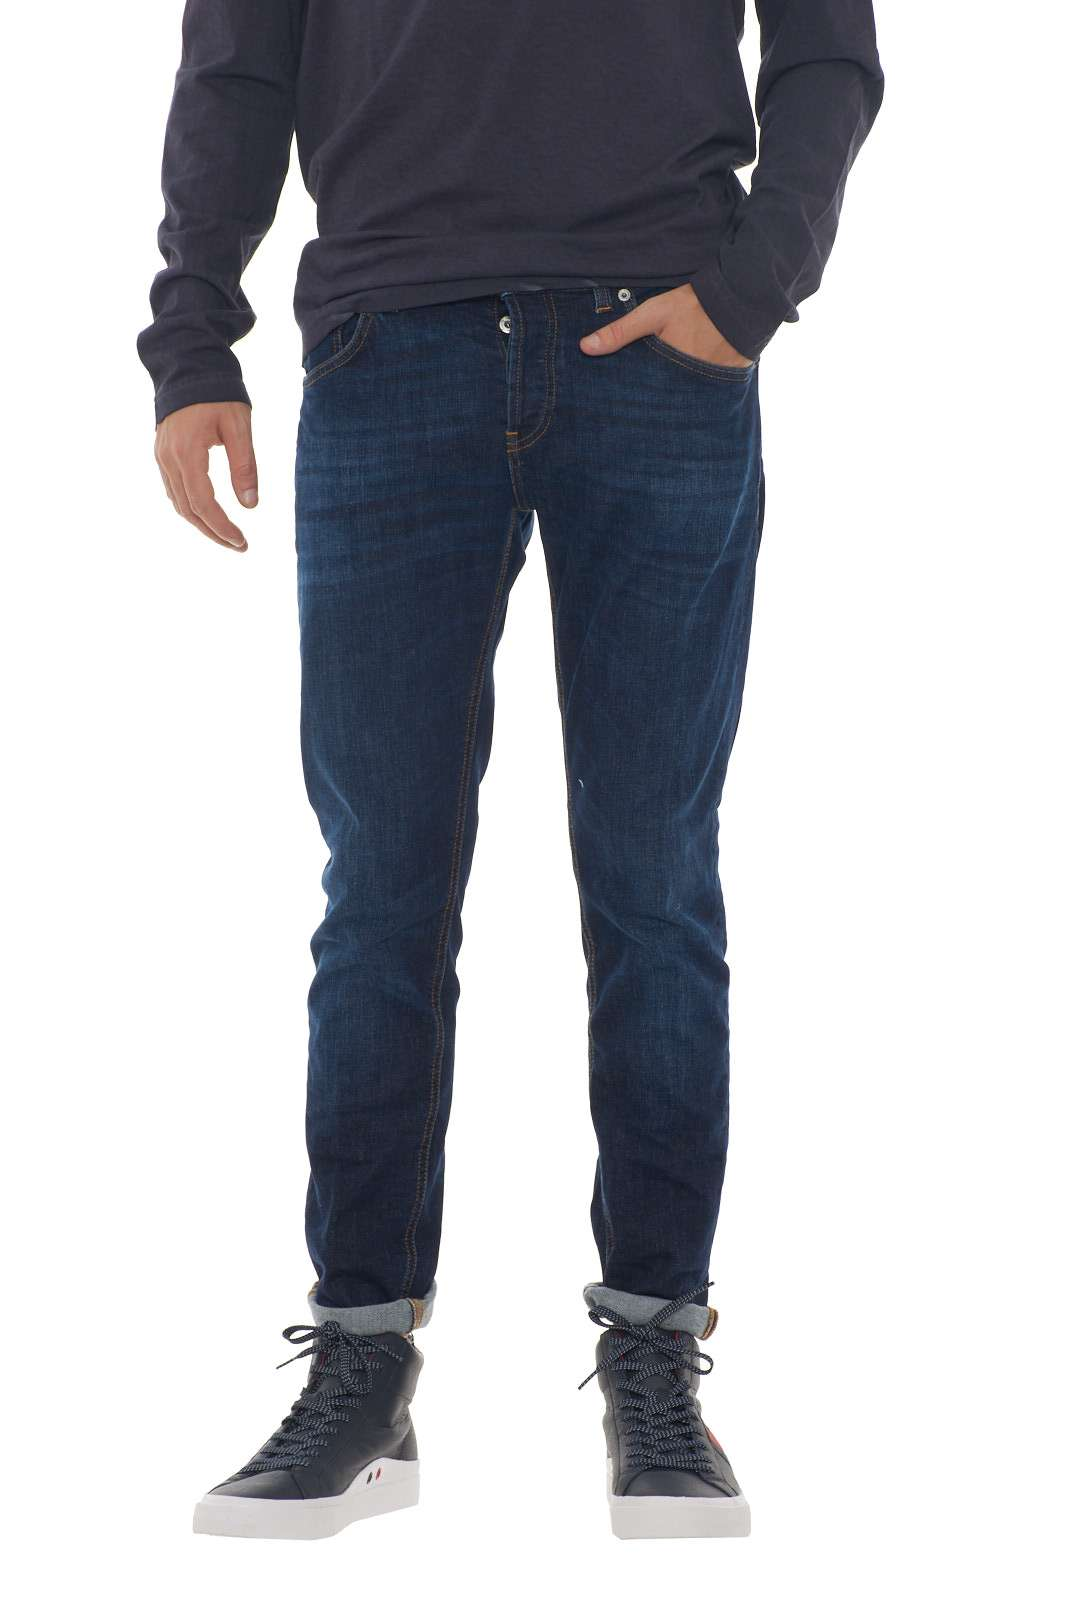 https://www.parmax.com/media/catalog/product/a/i/AI-outlet_parmax-denim-uomo-Dondup-UP168DS0257U-A.jpg